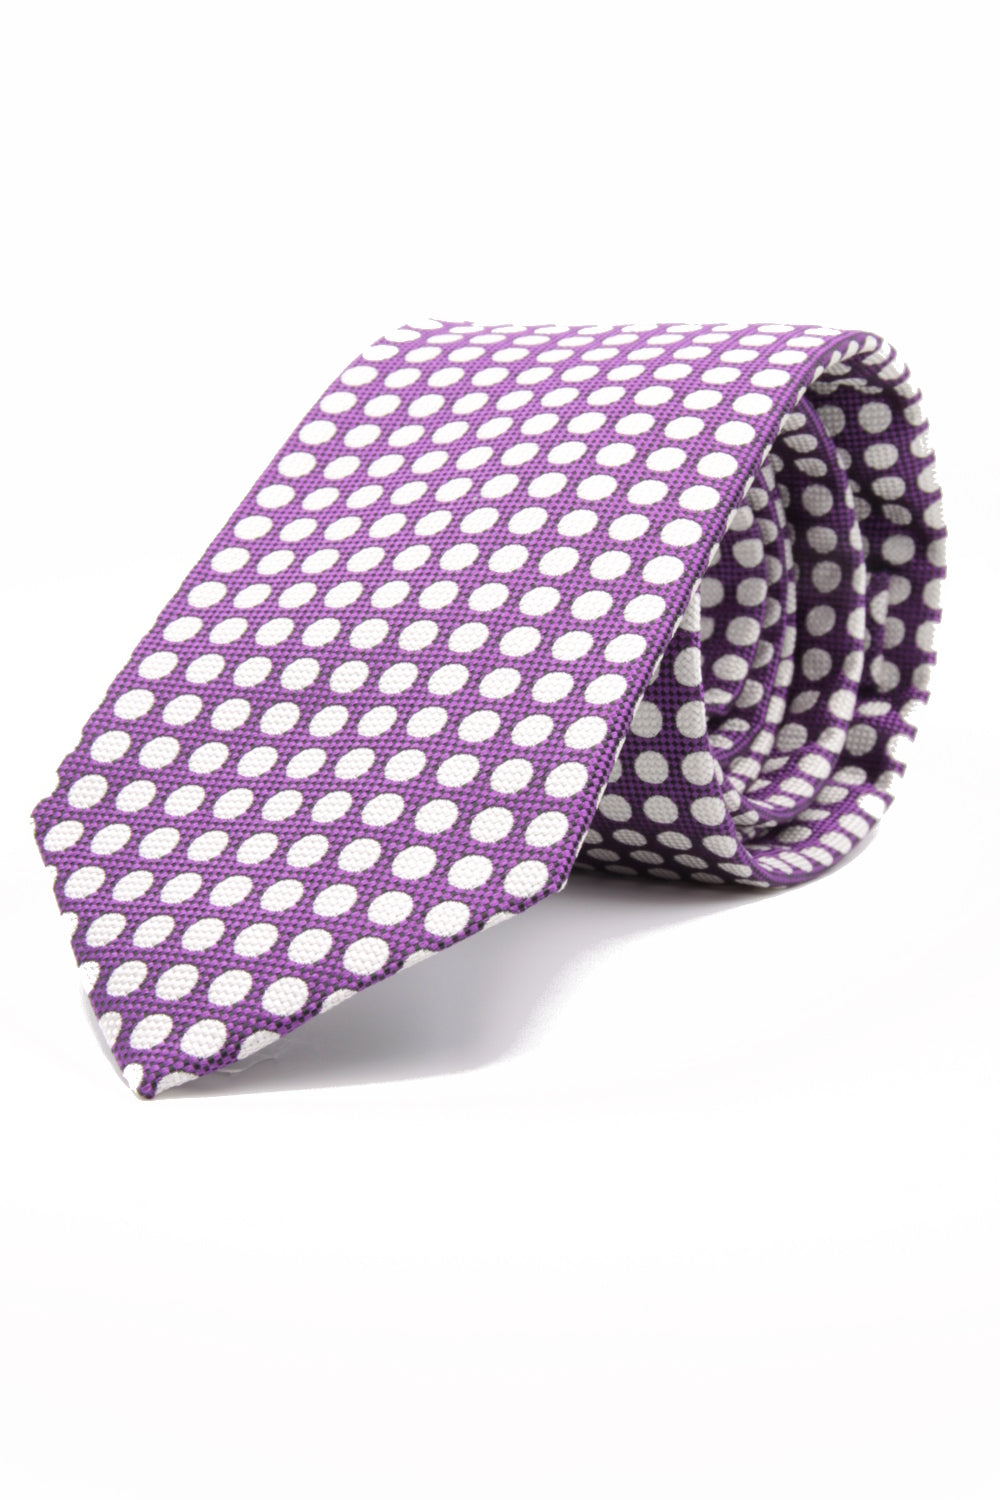 drake's Churchill's spot purple and white tie